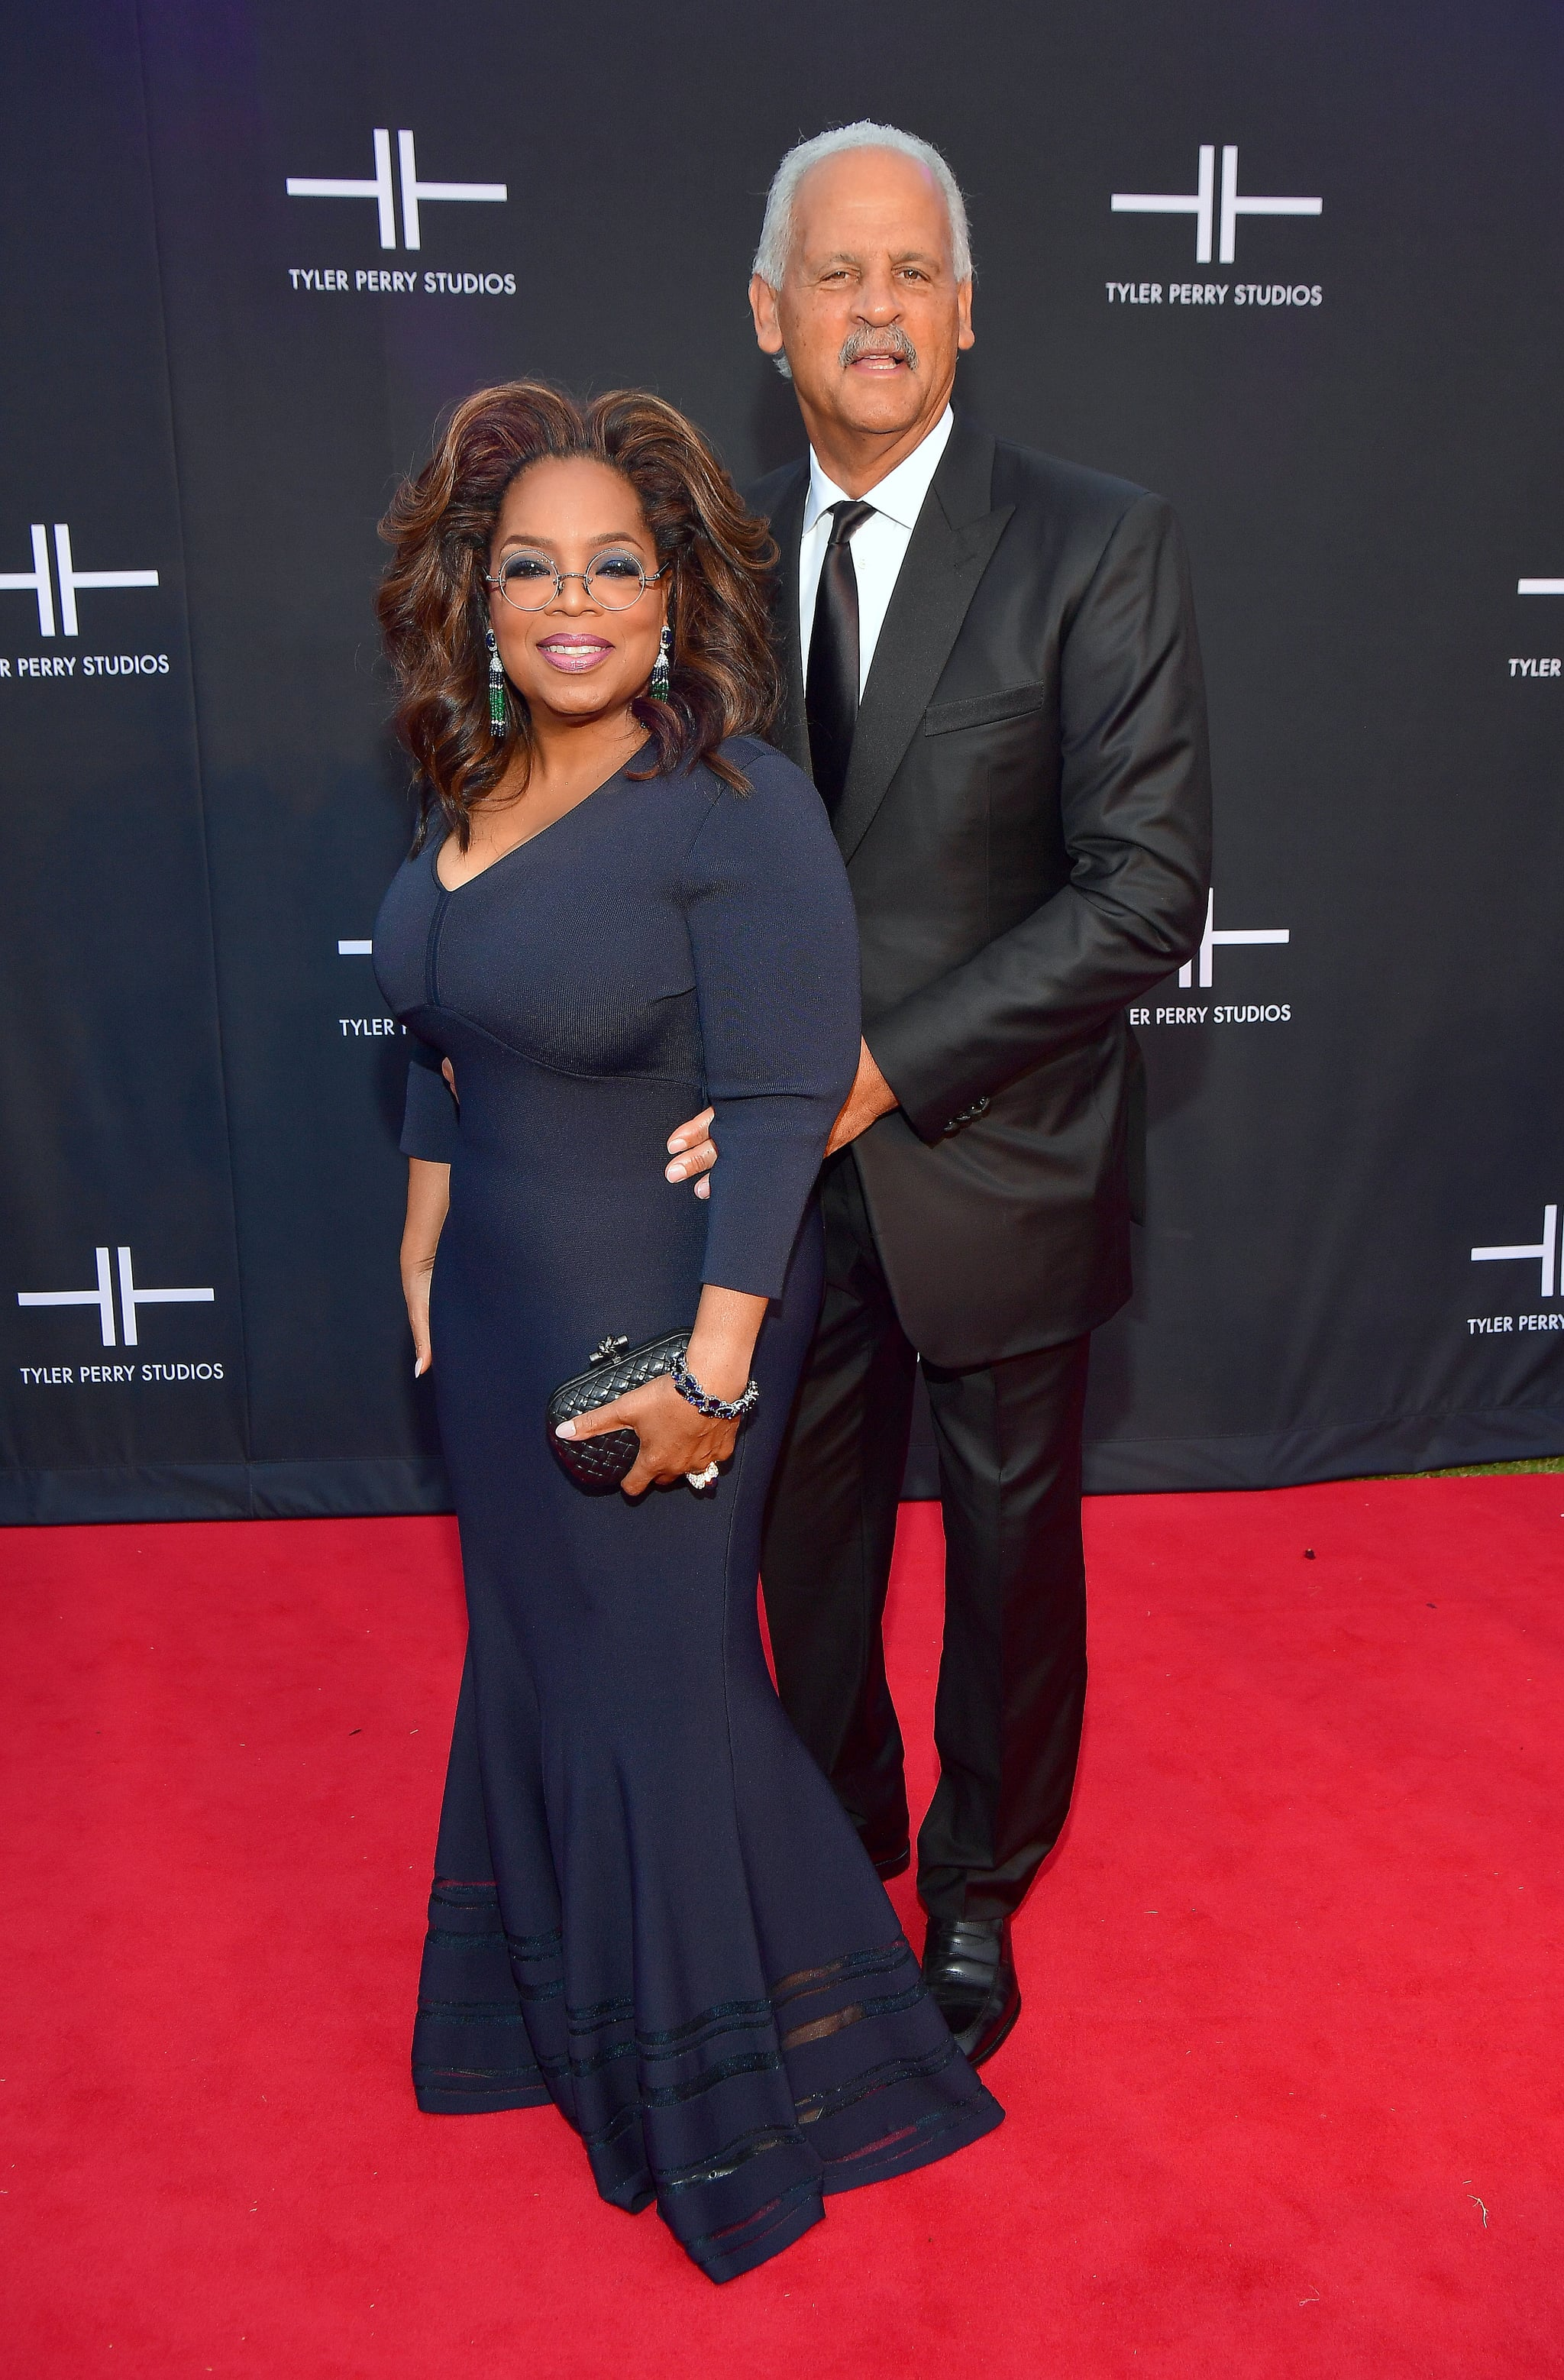 ATLANTA, GA - OCTOBER 05: Oprah Winfrey and Stedman Graham attend Tyler Perry Studios Grand Opening Gala - Arrivals at Tyler Perry Studios on October 5, 2019 in Atlanta, Georgia.(Photo by Prince Williams/Wireimage)